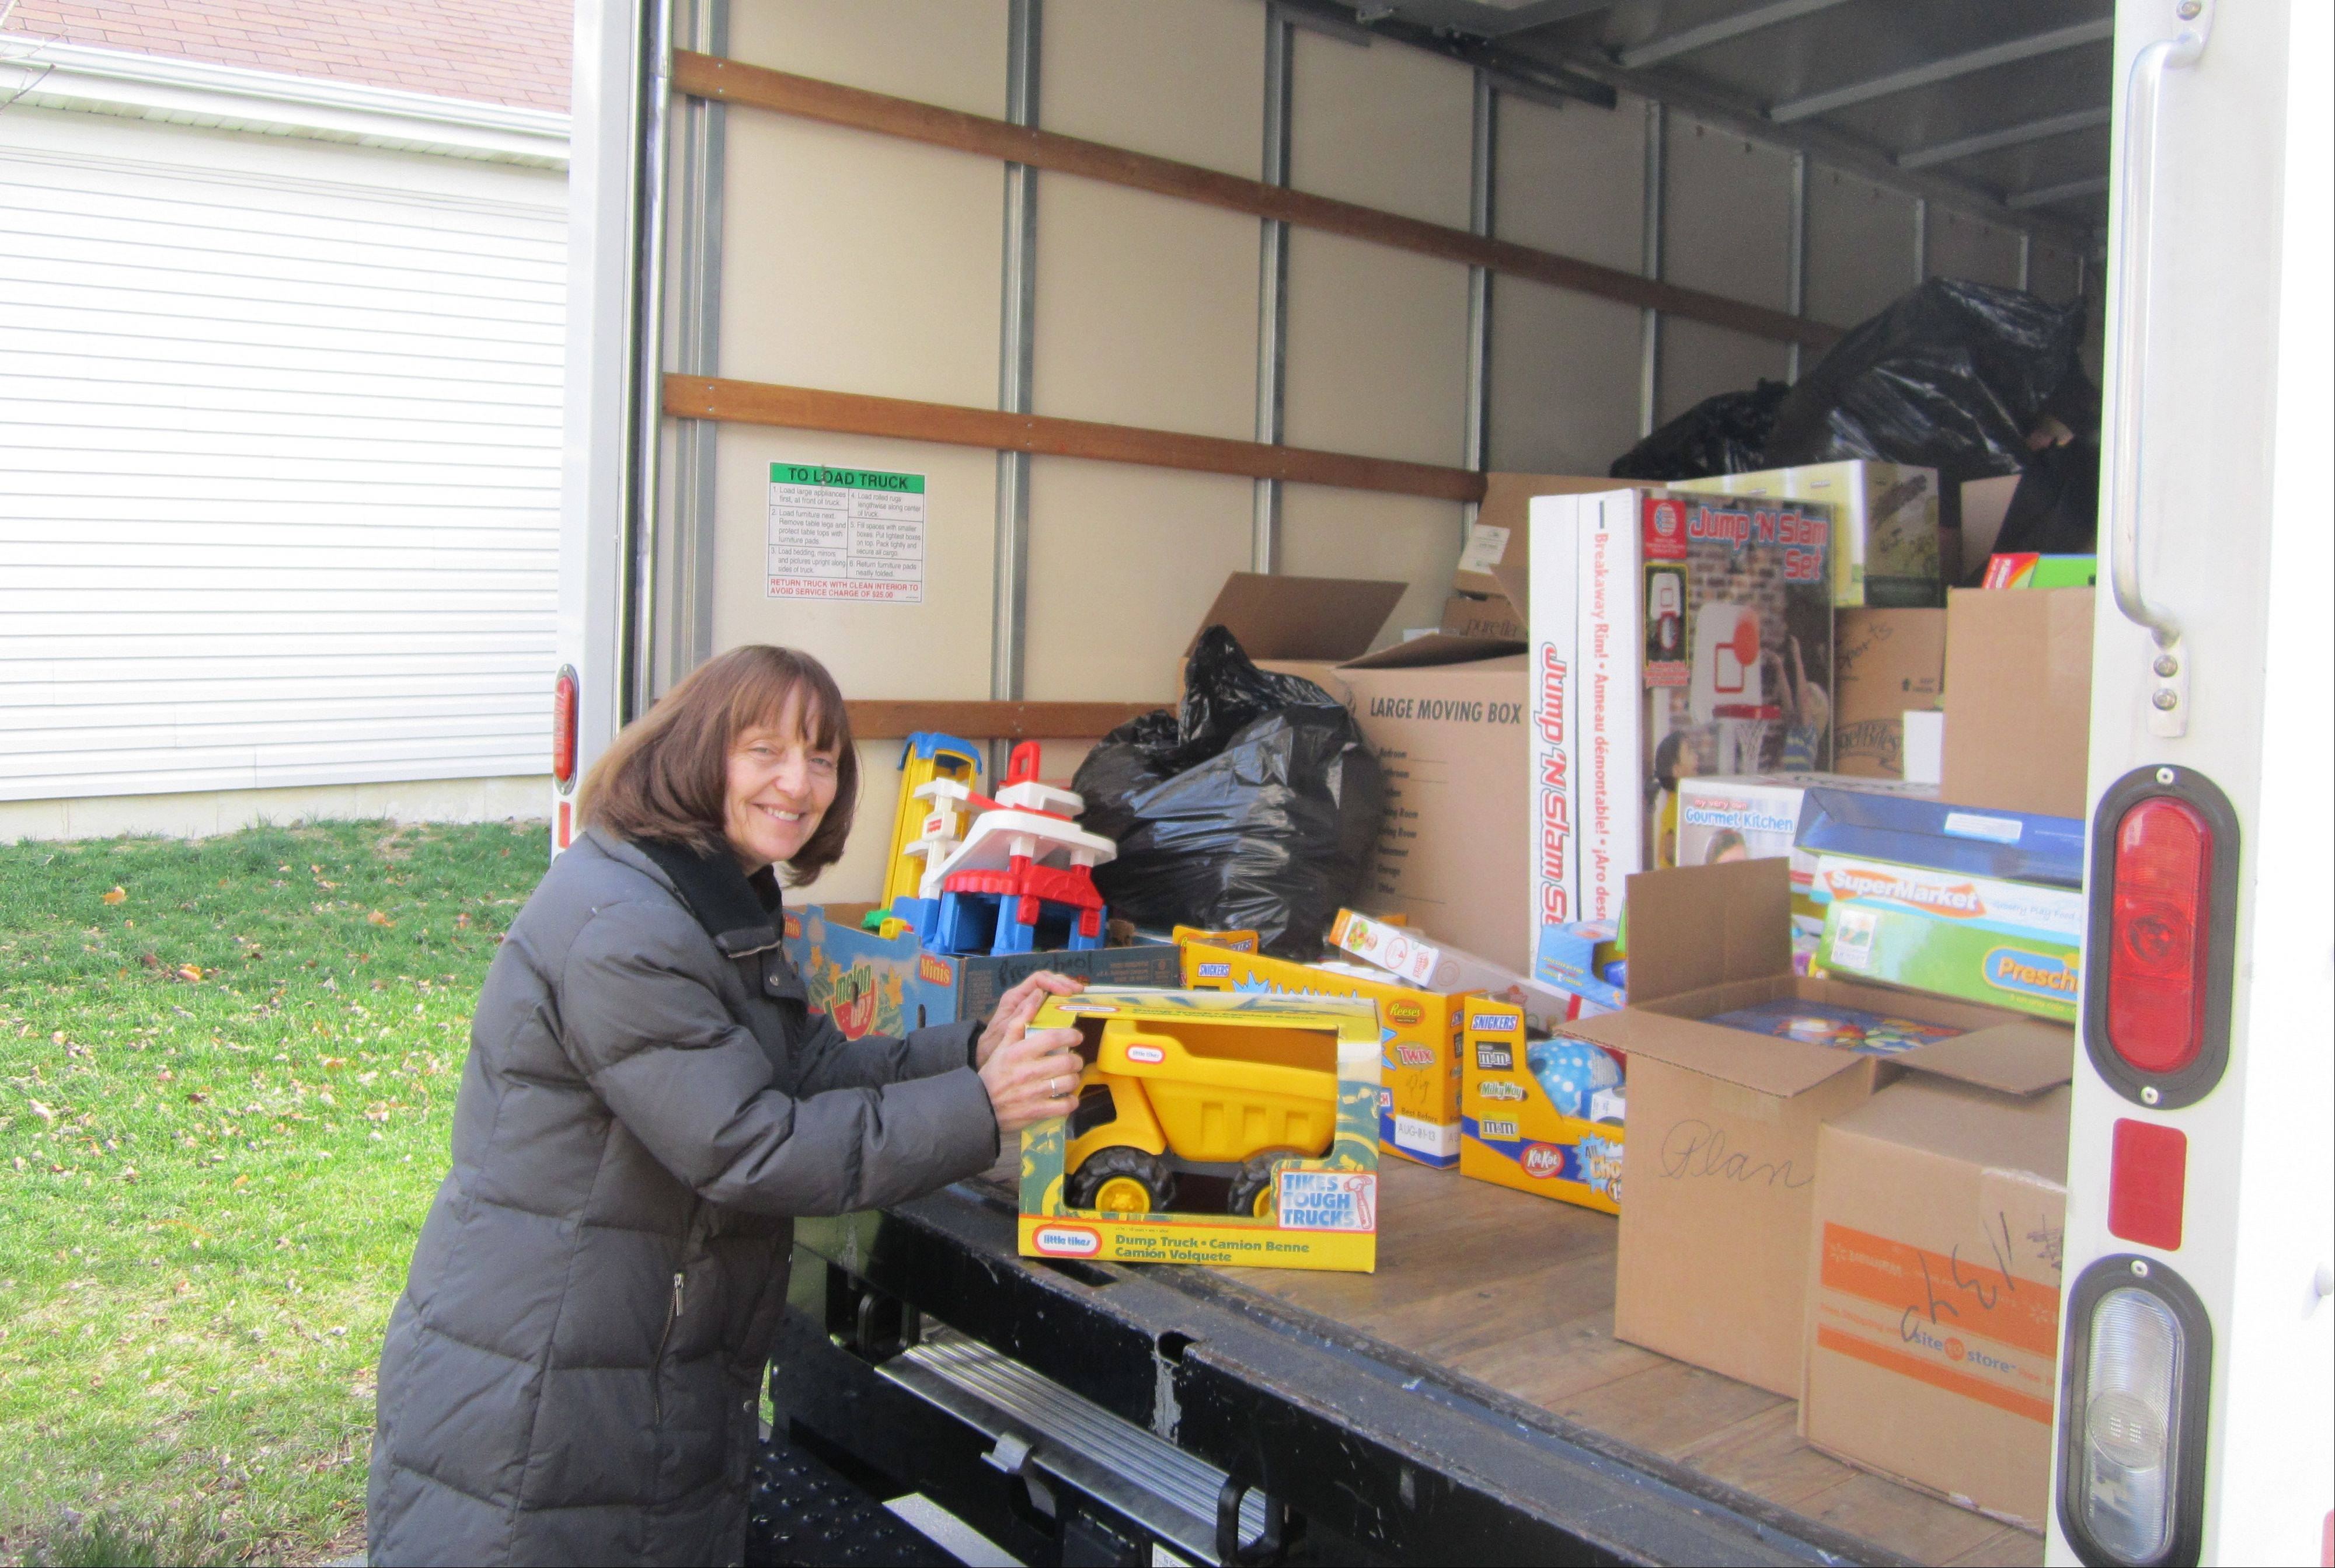 Wen Marcec of Geneva and her husband, Jerry, drove a truckload of toys to Kentucky as part of a Make A Difference Day project in fall 2012. Marcec recently was recognized for her efforts and will receive a $10,000 grant and a trip to Washington, D.C., for a ceremony featuring actor Tony Danza.